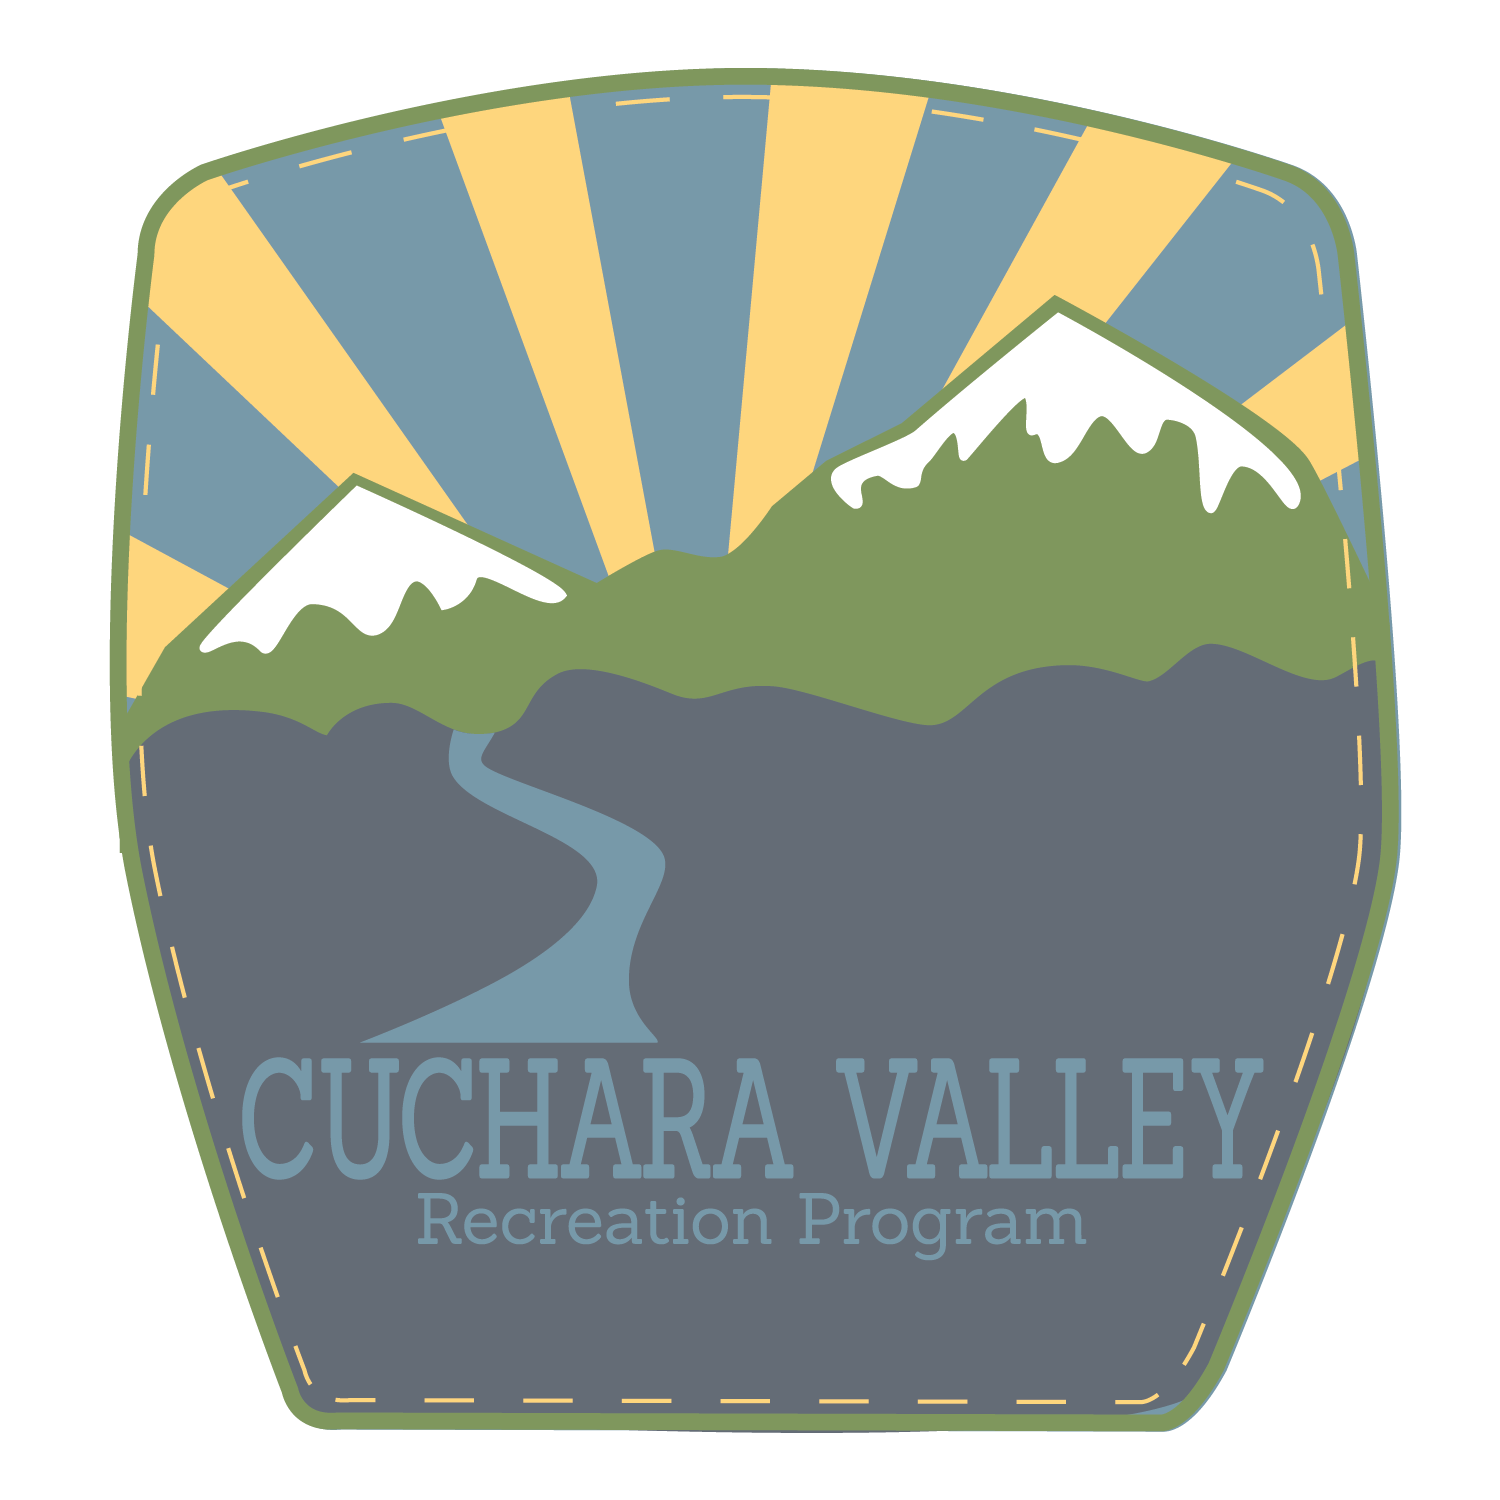 Cuchara Valley Recreation Program